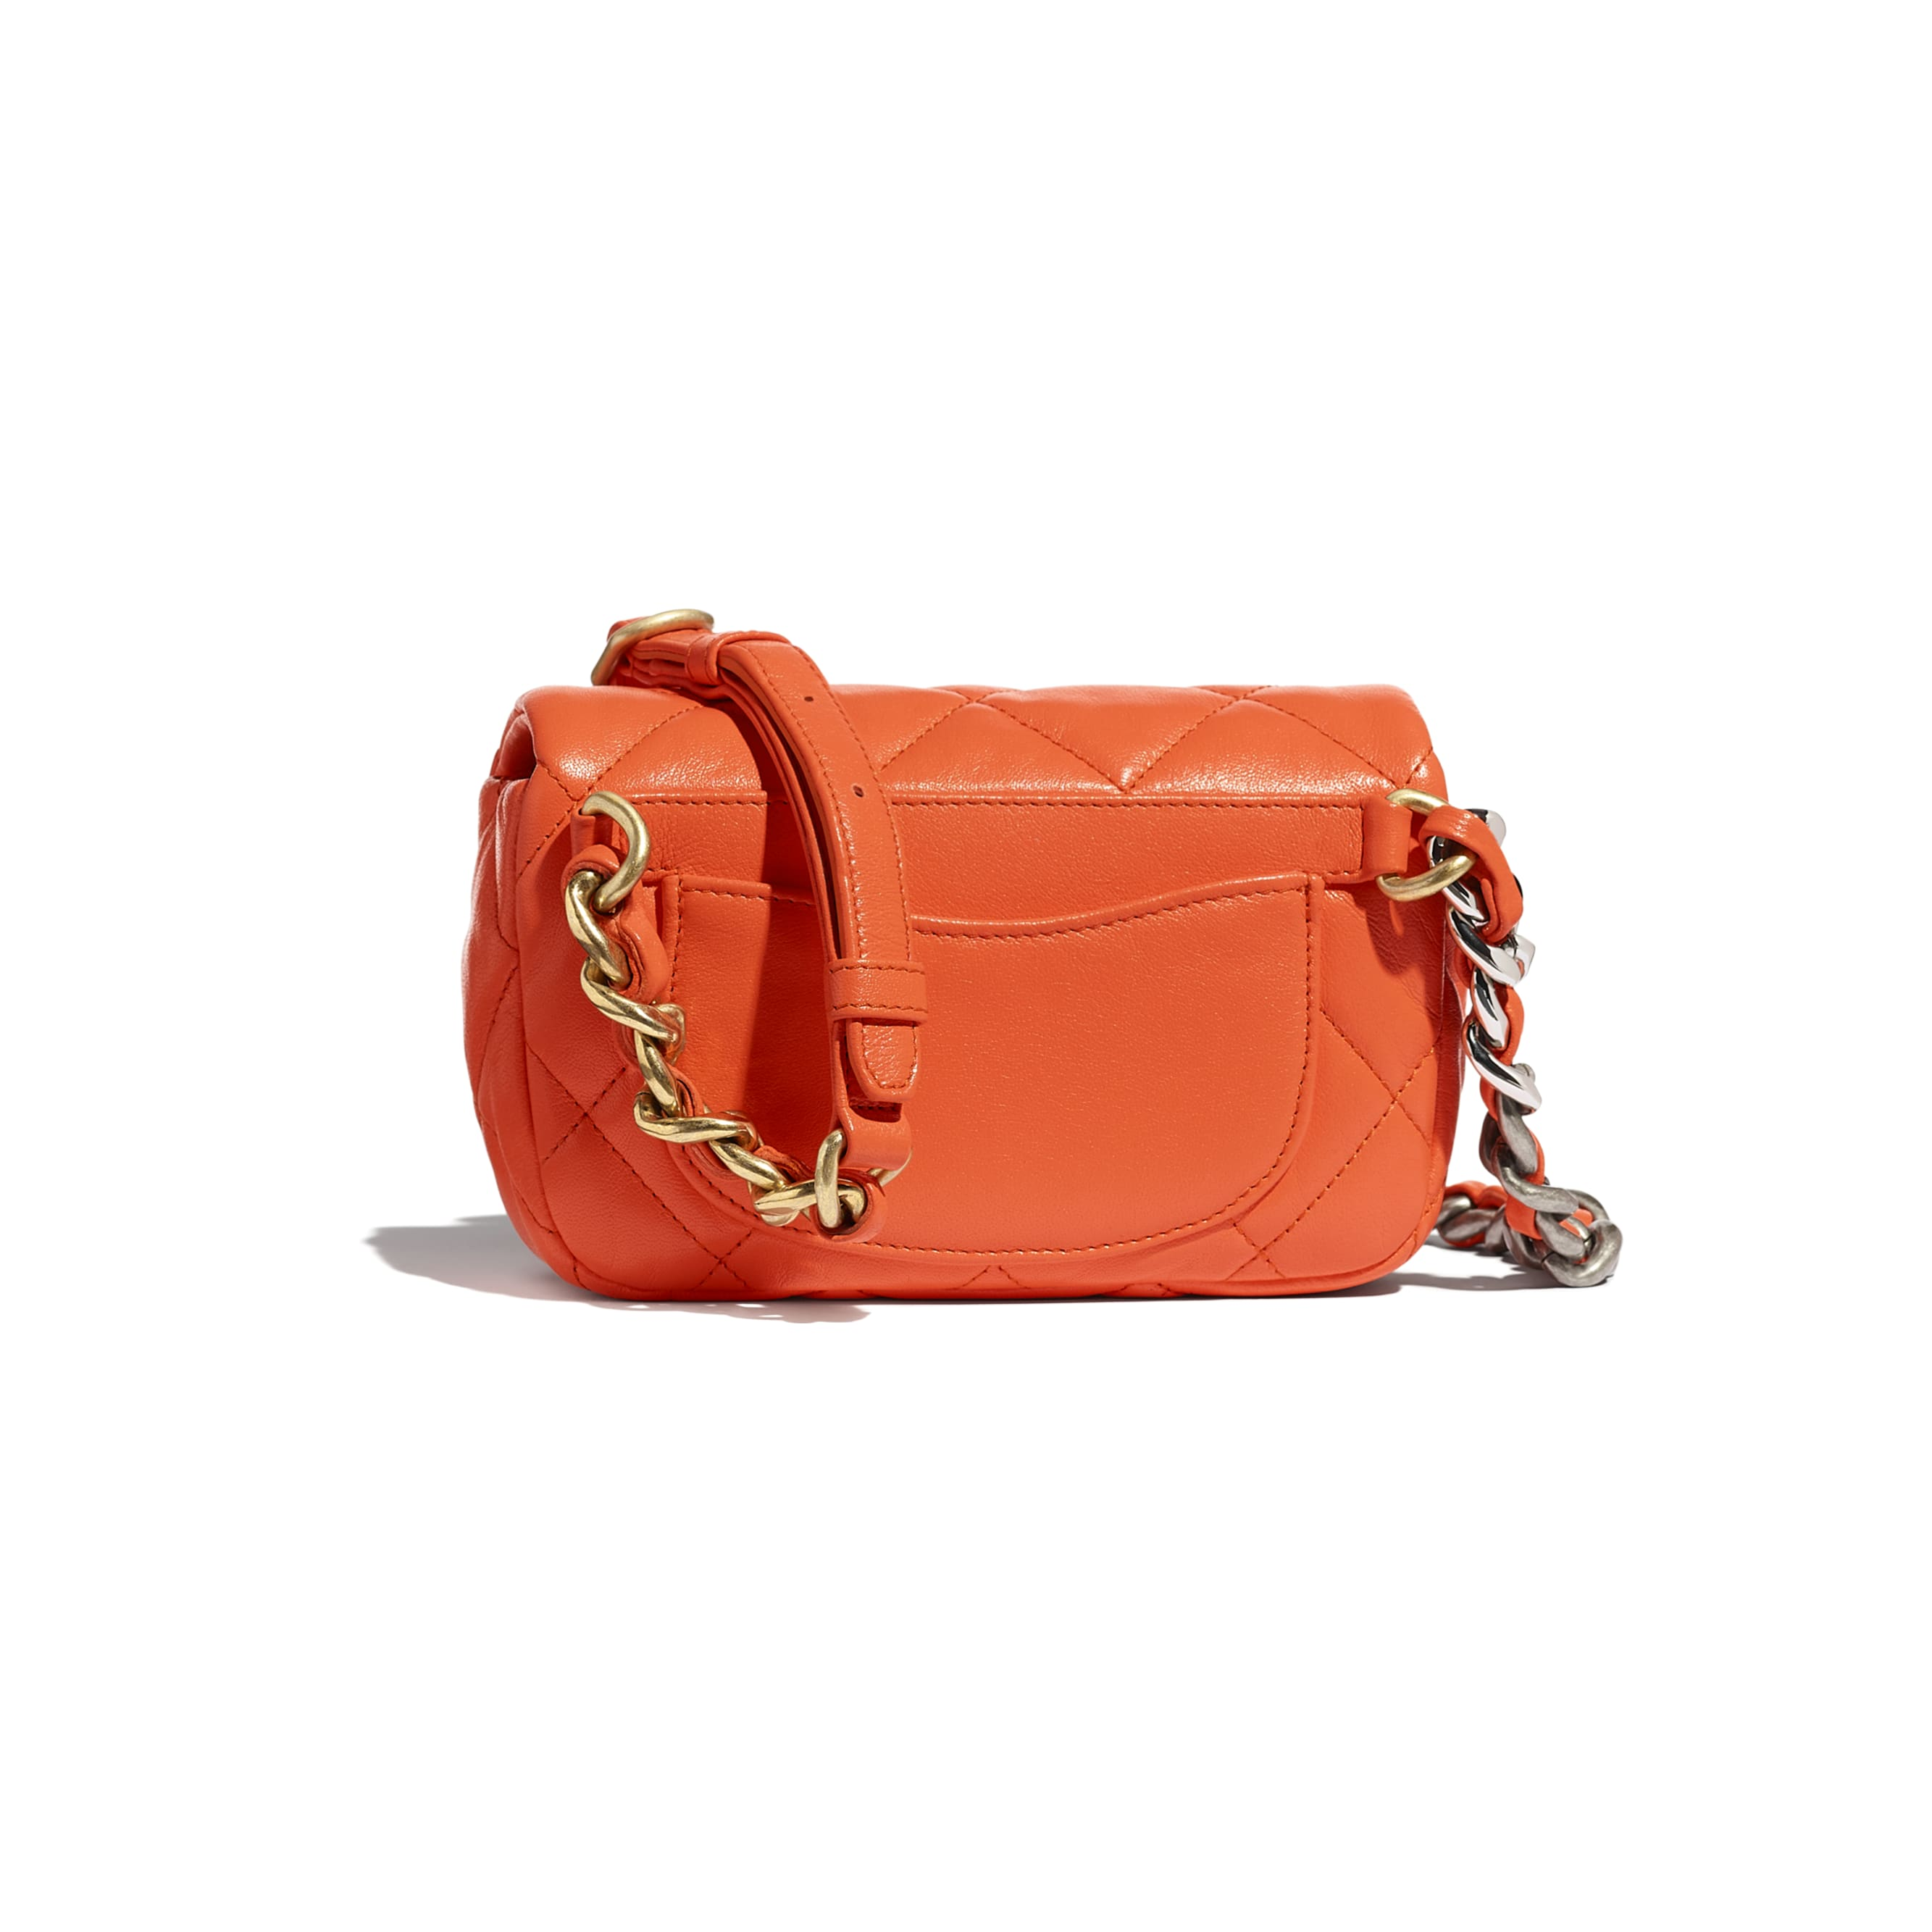 CHANEL 19 Gürteltasche  - Orange - Lammleder, gold-, silber- & rutheniumfarbenes Metall - CHANEL - Alternative Ansicht - Standardgröße anzeigen